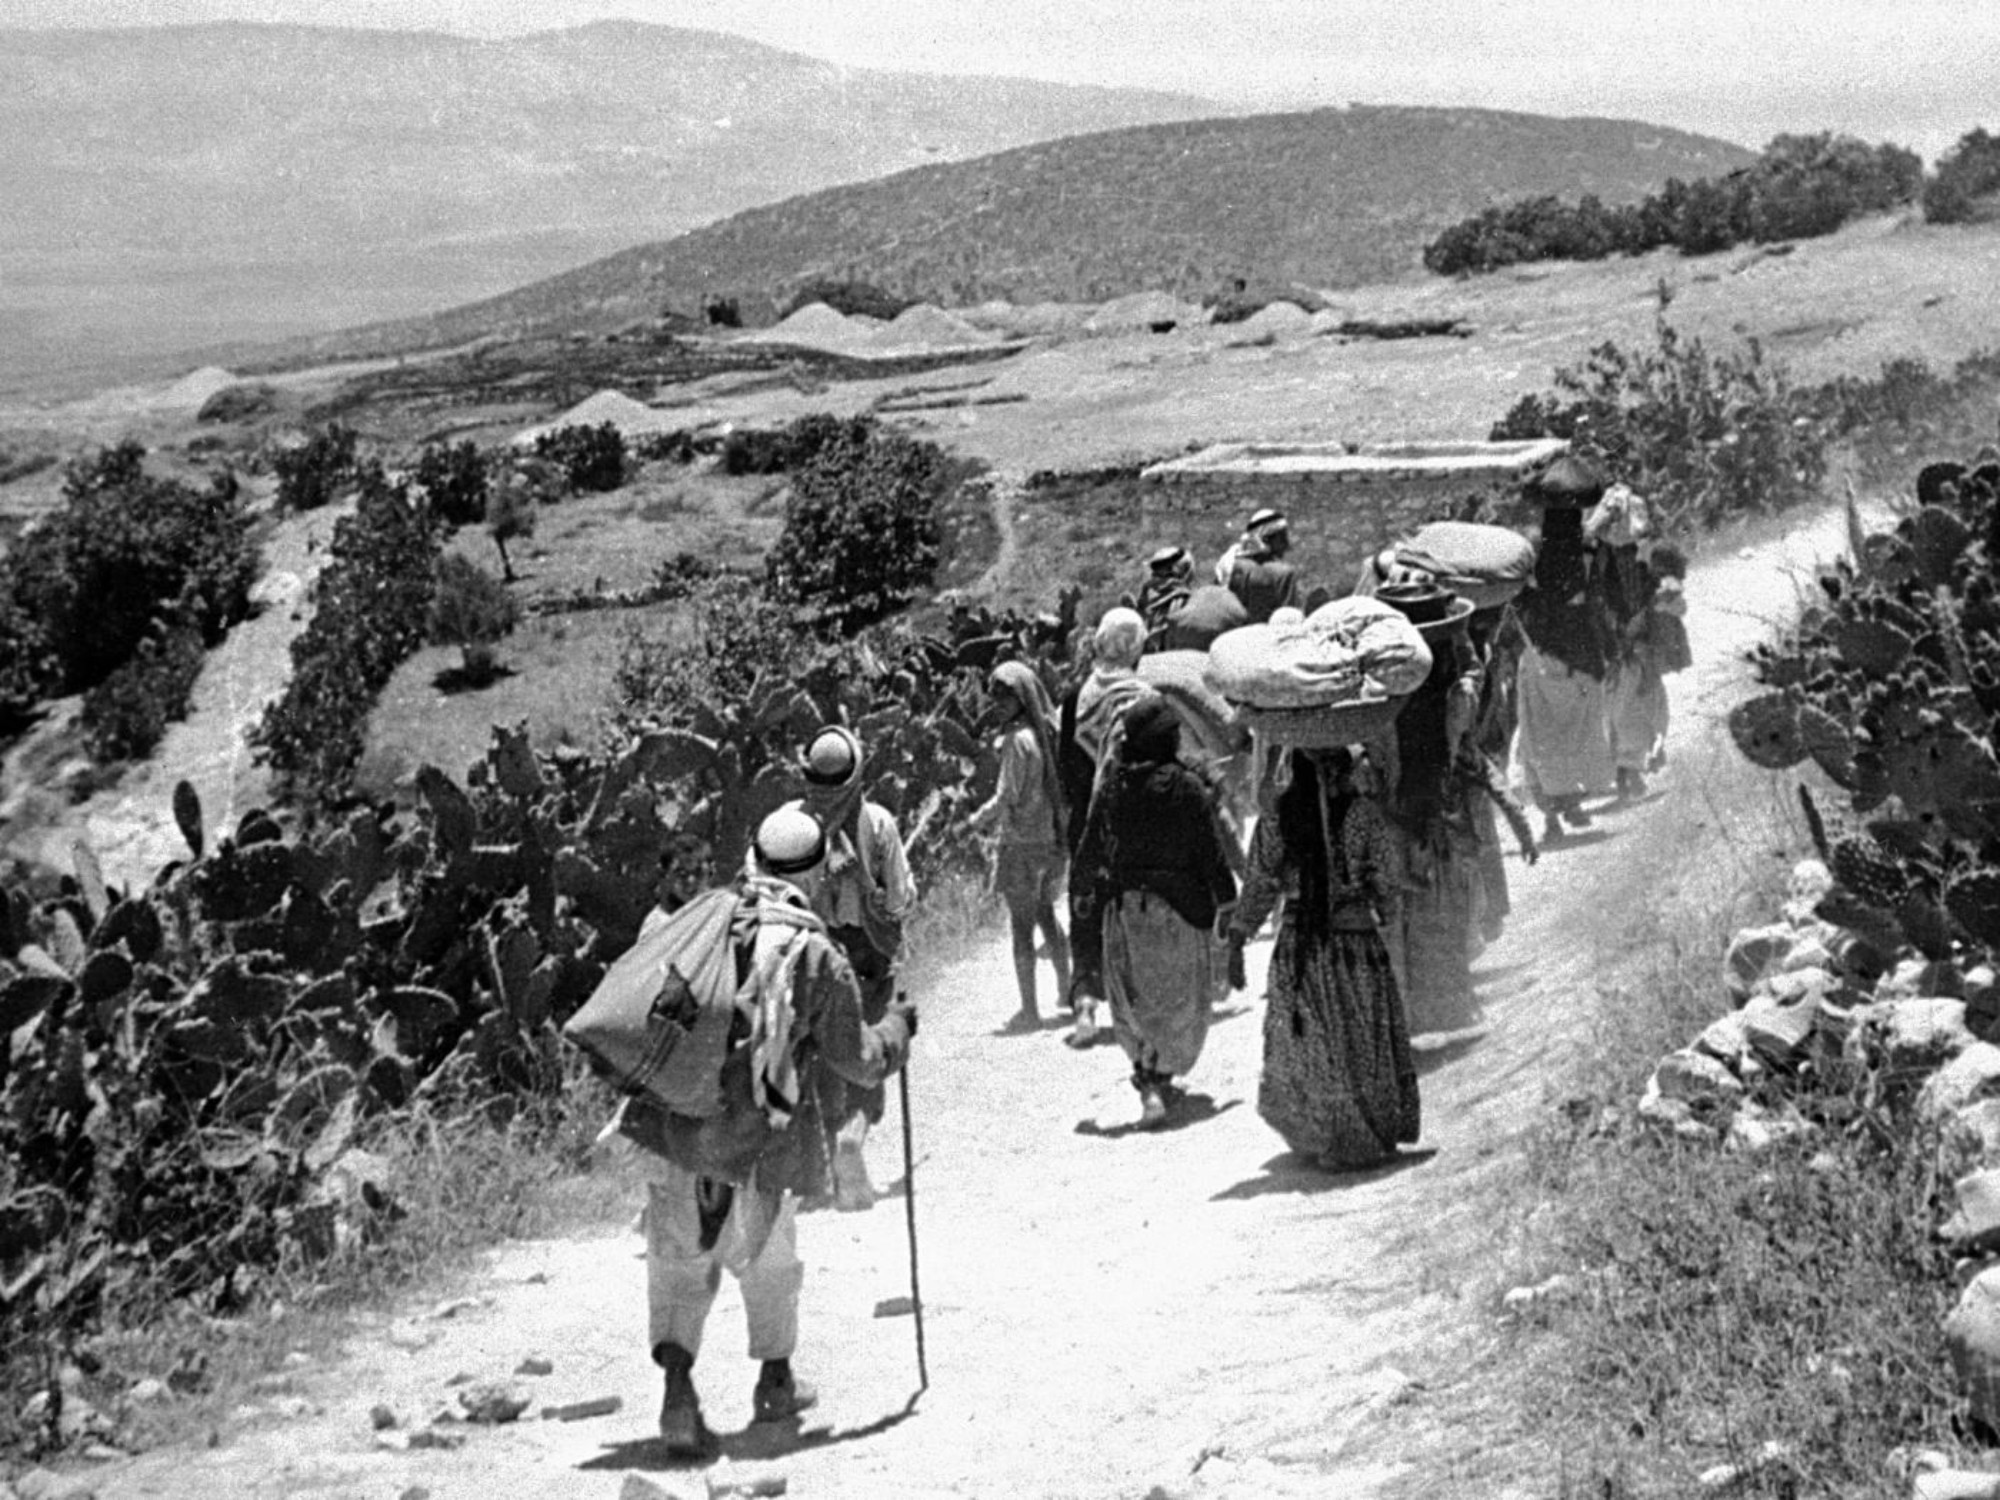 Palestinians flee the village of Qumiya during the Nakba in 1948 (Archive/Palestine Remembered)